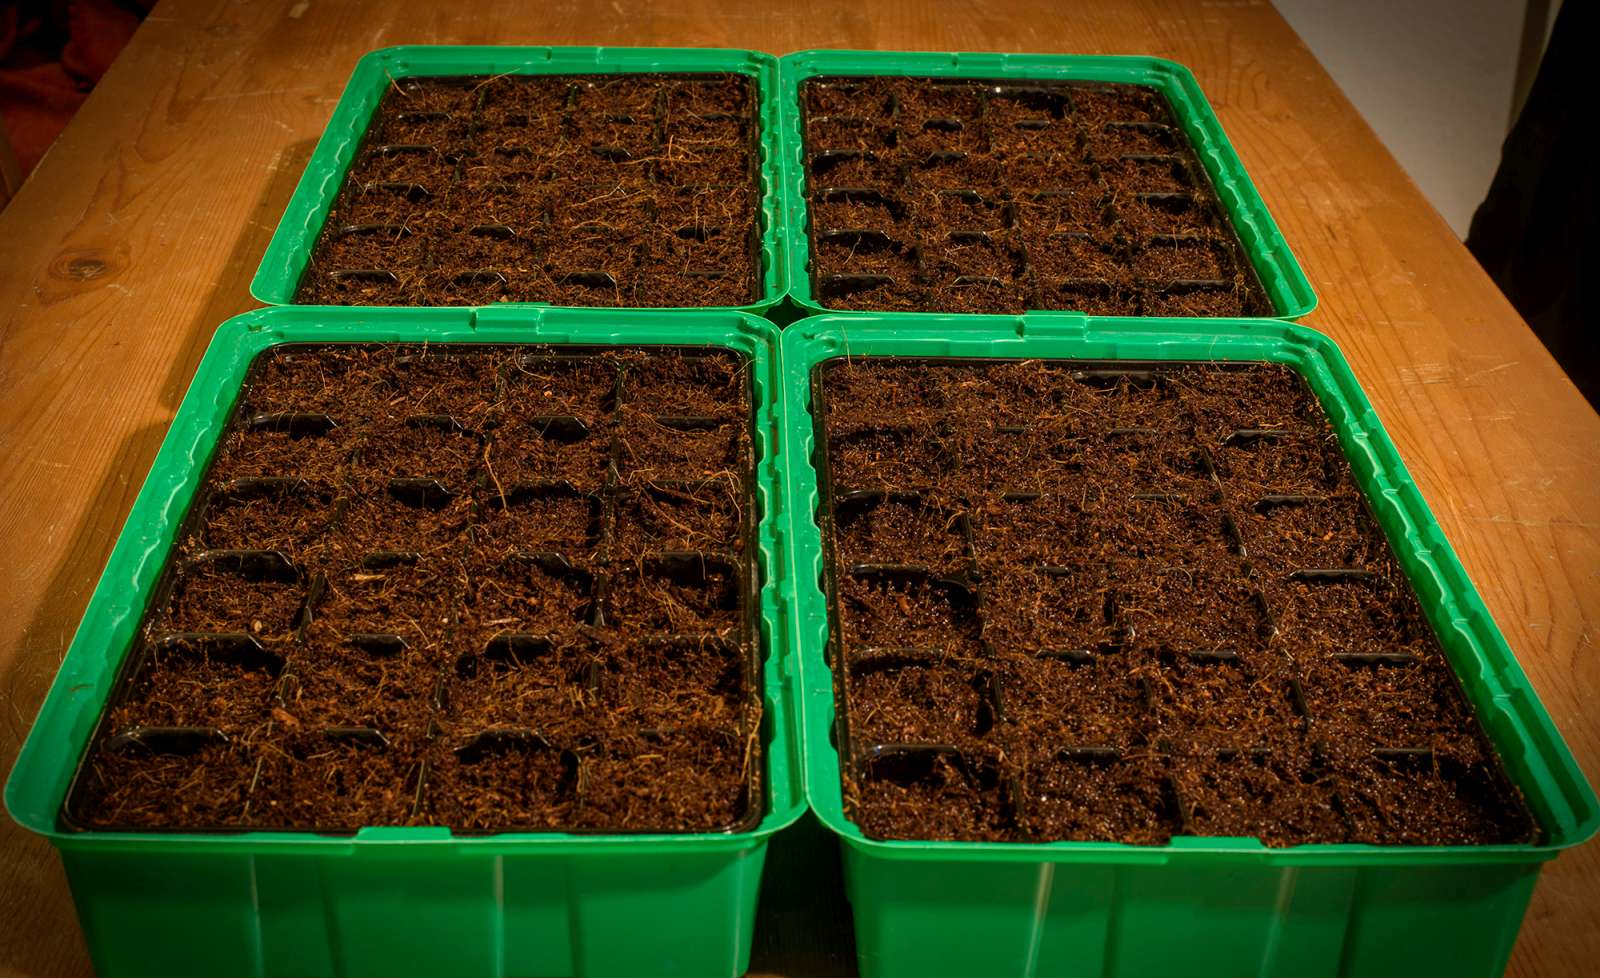 Freshly germinated seeds getting ready for action